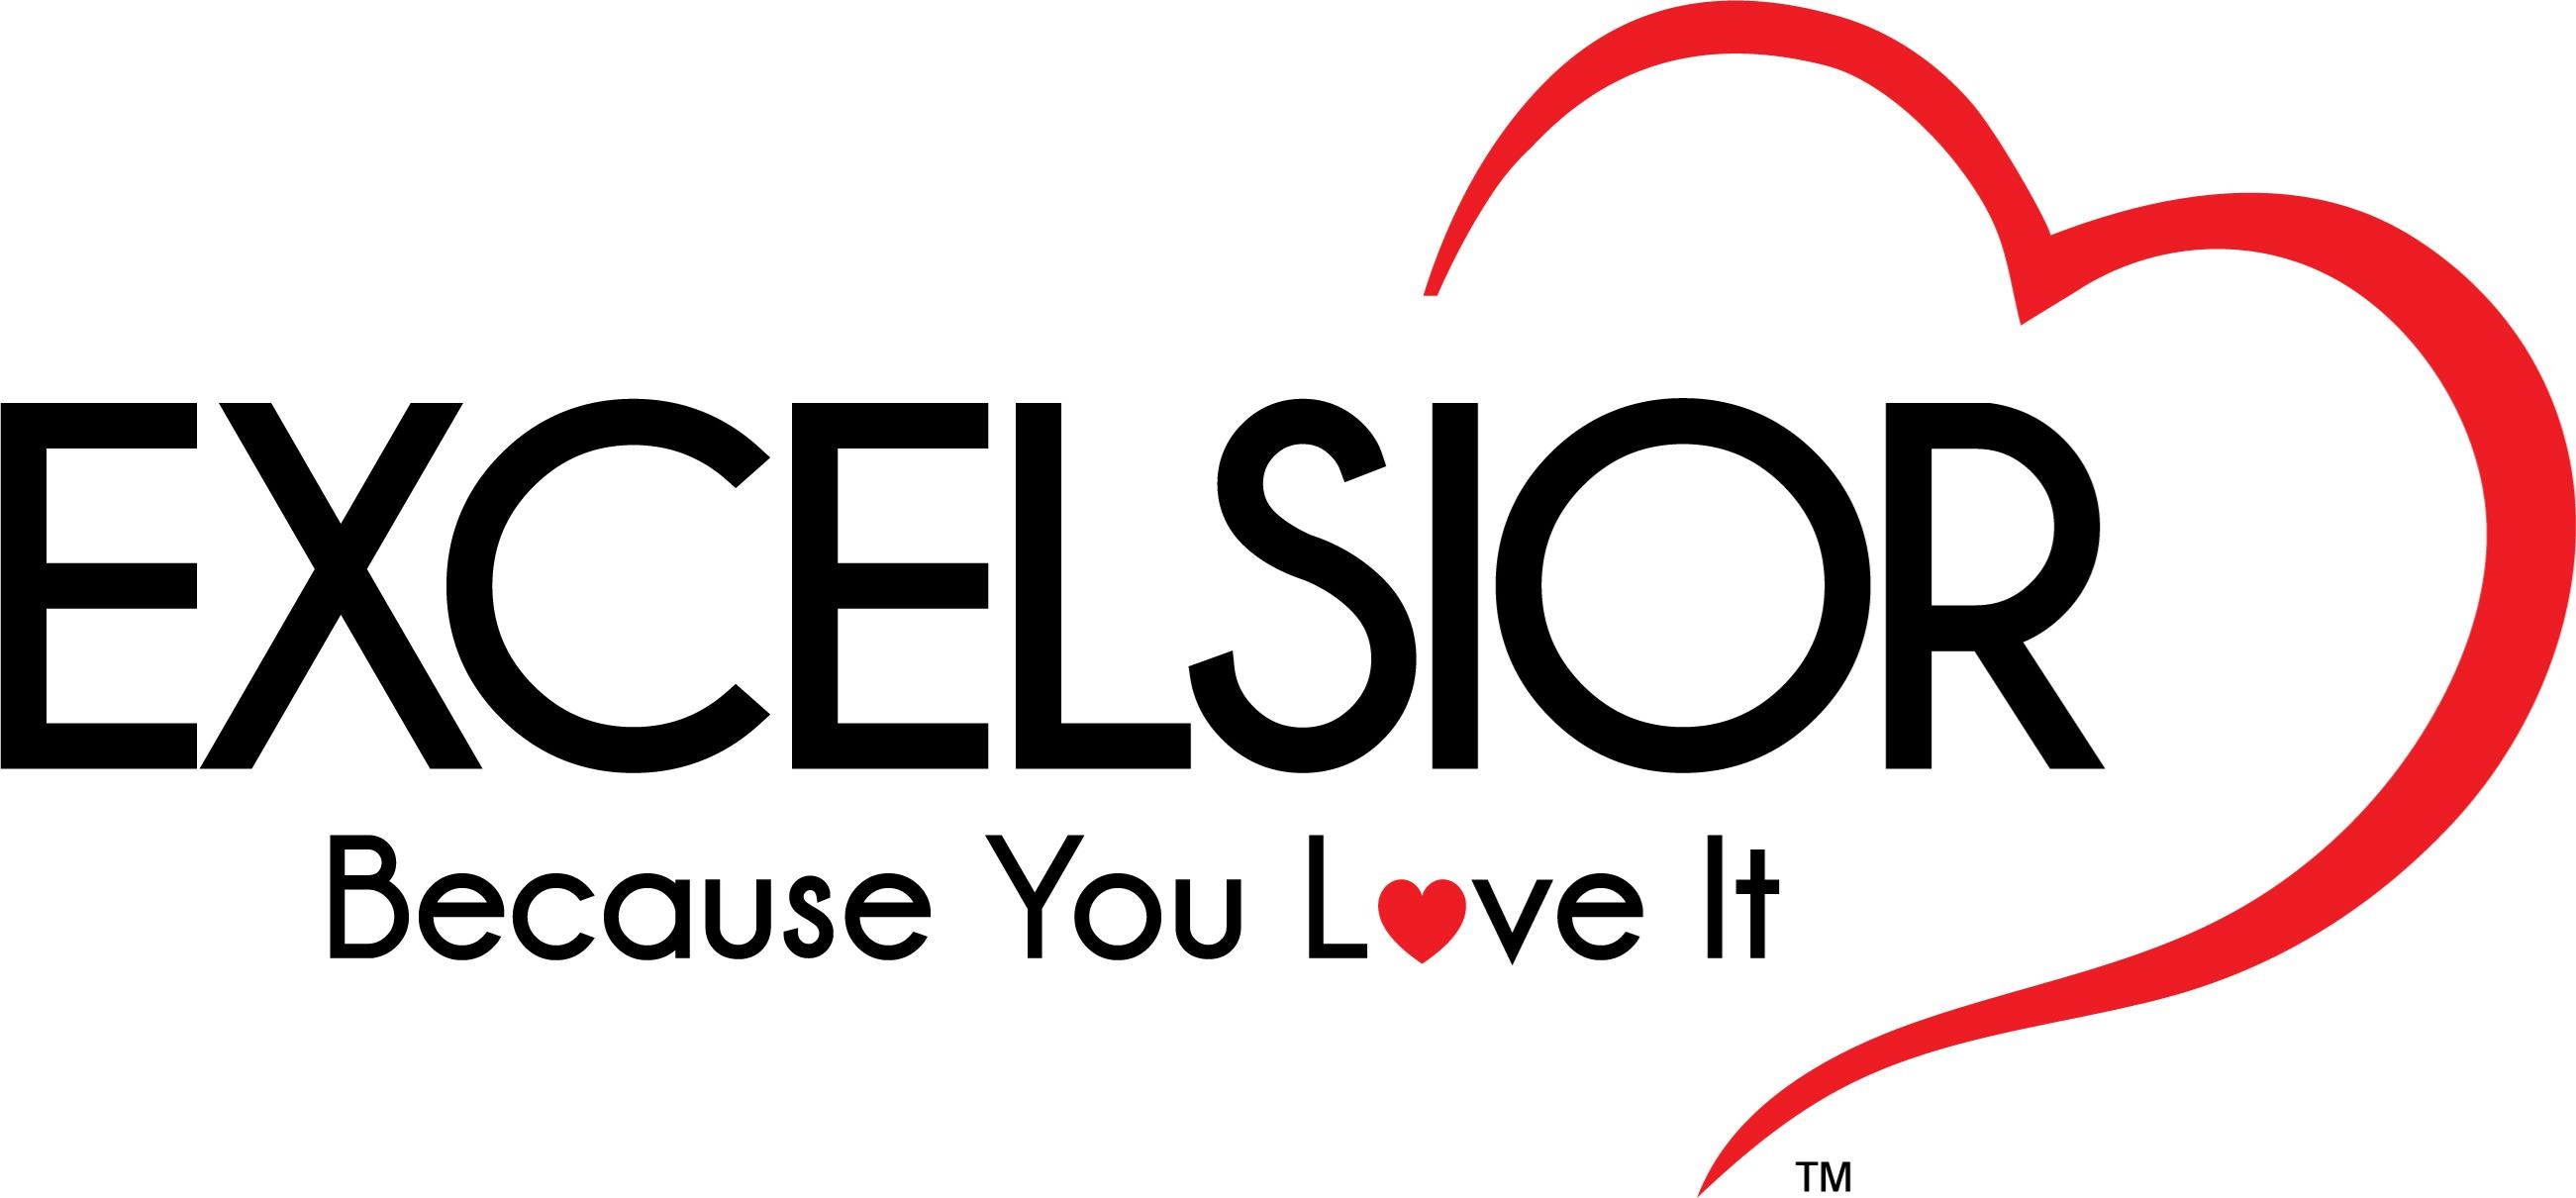 Stationary Furniture Stationary Furniture Protection $7501-$10000 by Excelsior at C. S. Wo & Sons California